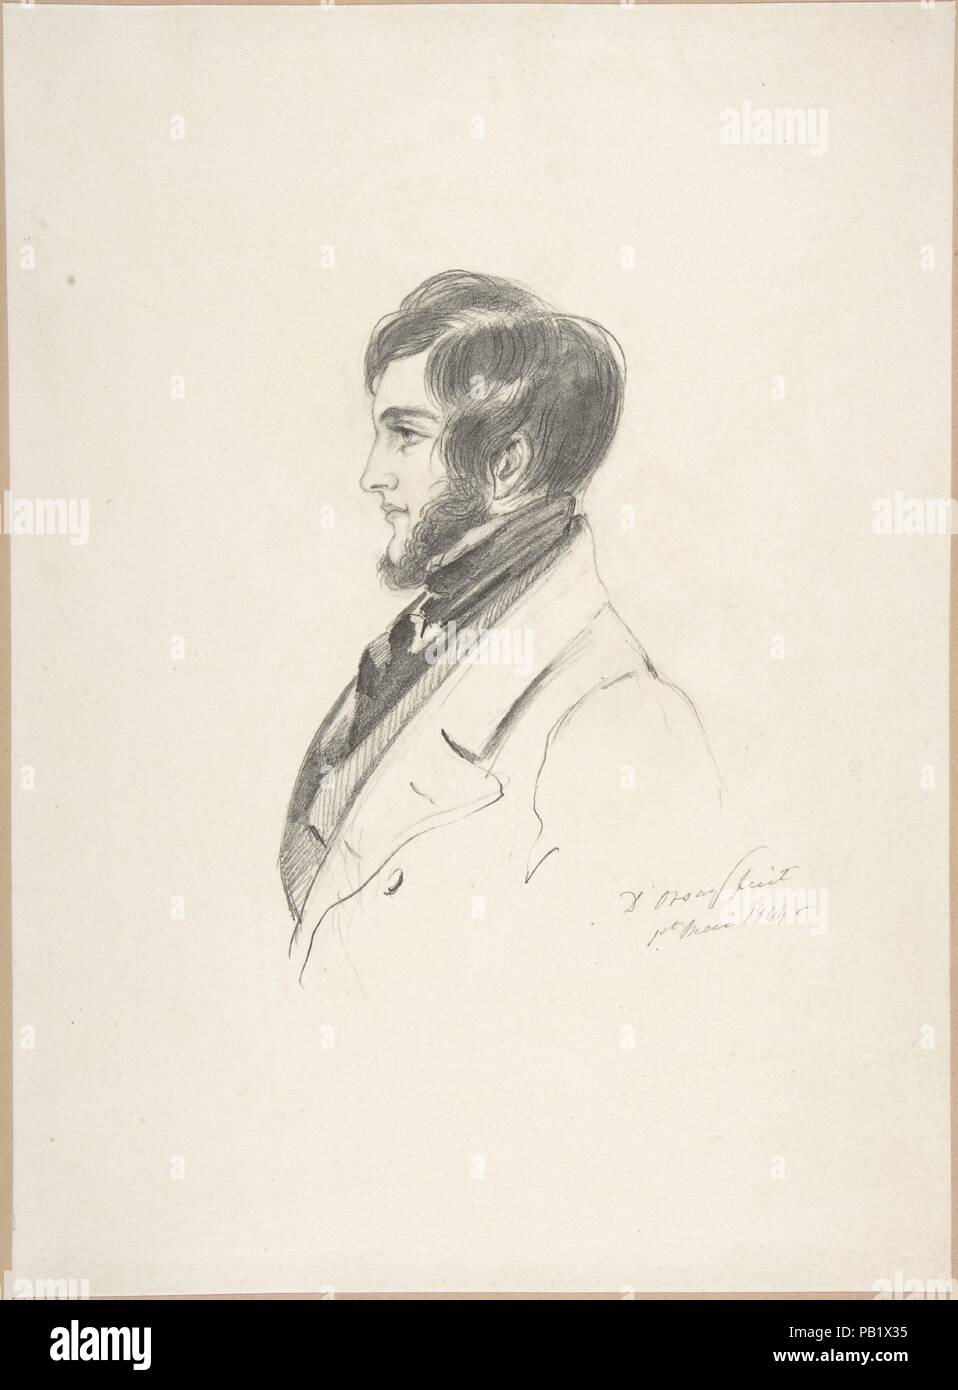 Portrait of Charles Kinnaird Sheridan. Artist: Count Alfred Guillaume Gabriel D'Orsay (French, 1801-1852). Dimensions: sheet: 11 1/16 x 8 1/16in. (28.1 x 20.4cm). Date: 1844. Museum: Metropolitan Museum of Art, New York, USA. - Stock Image